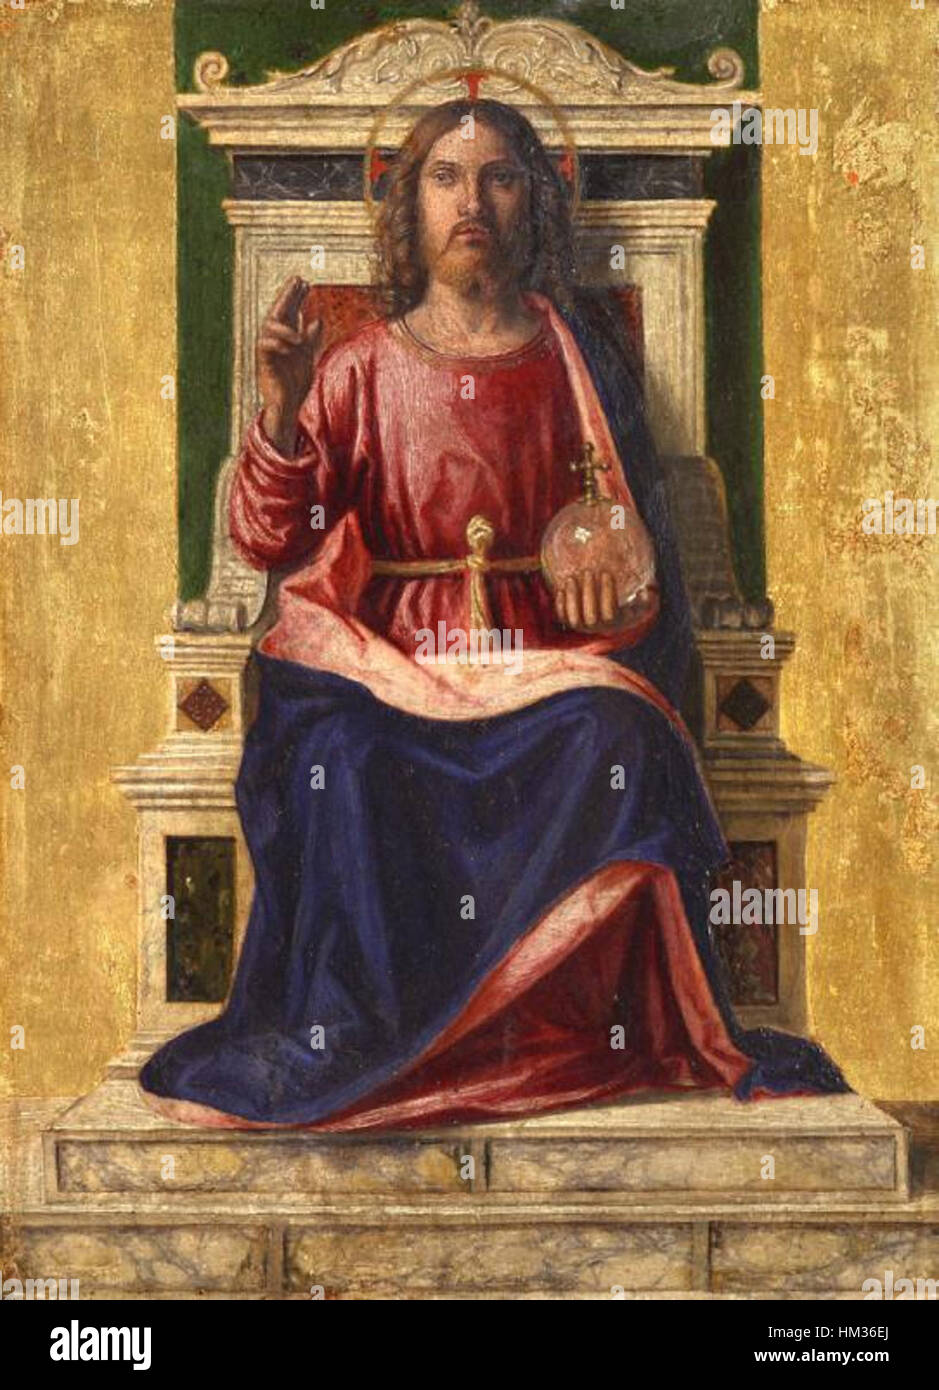 Jesus christ on the throne by cima da conegliano stock photo jesus christ on the throne by cima da conegliano altavistaventures Choice Image